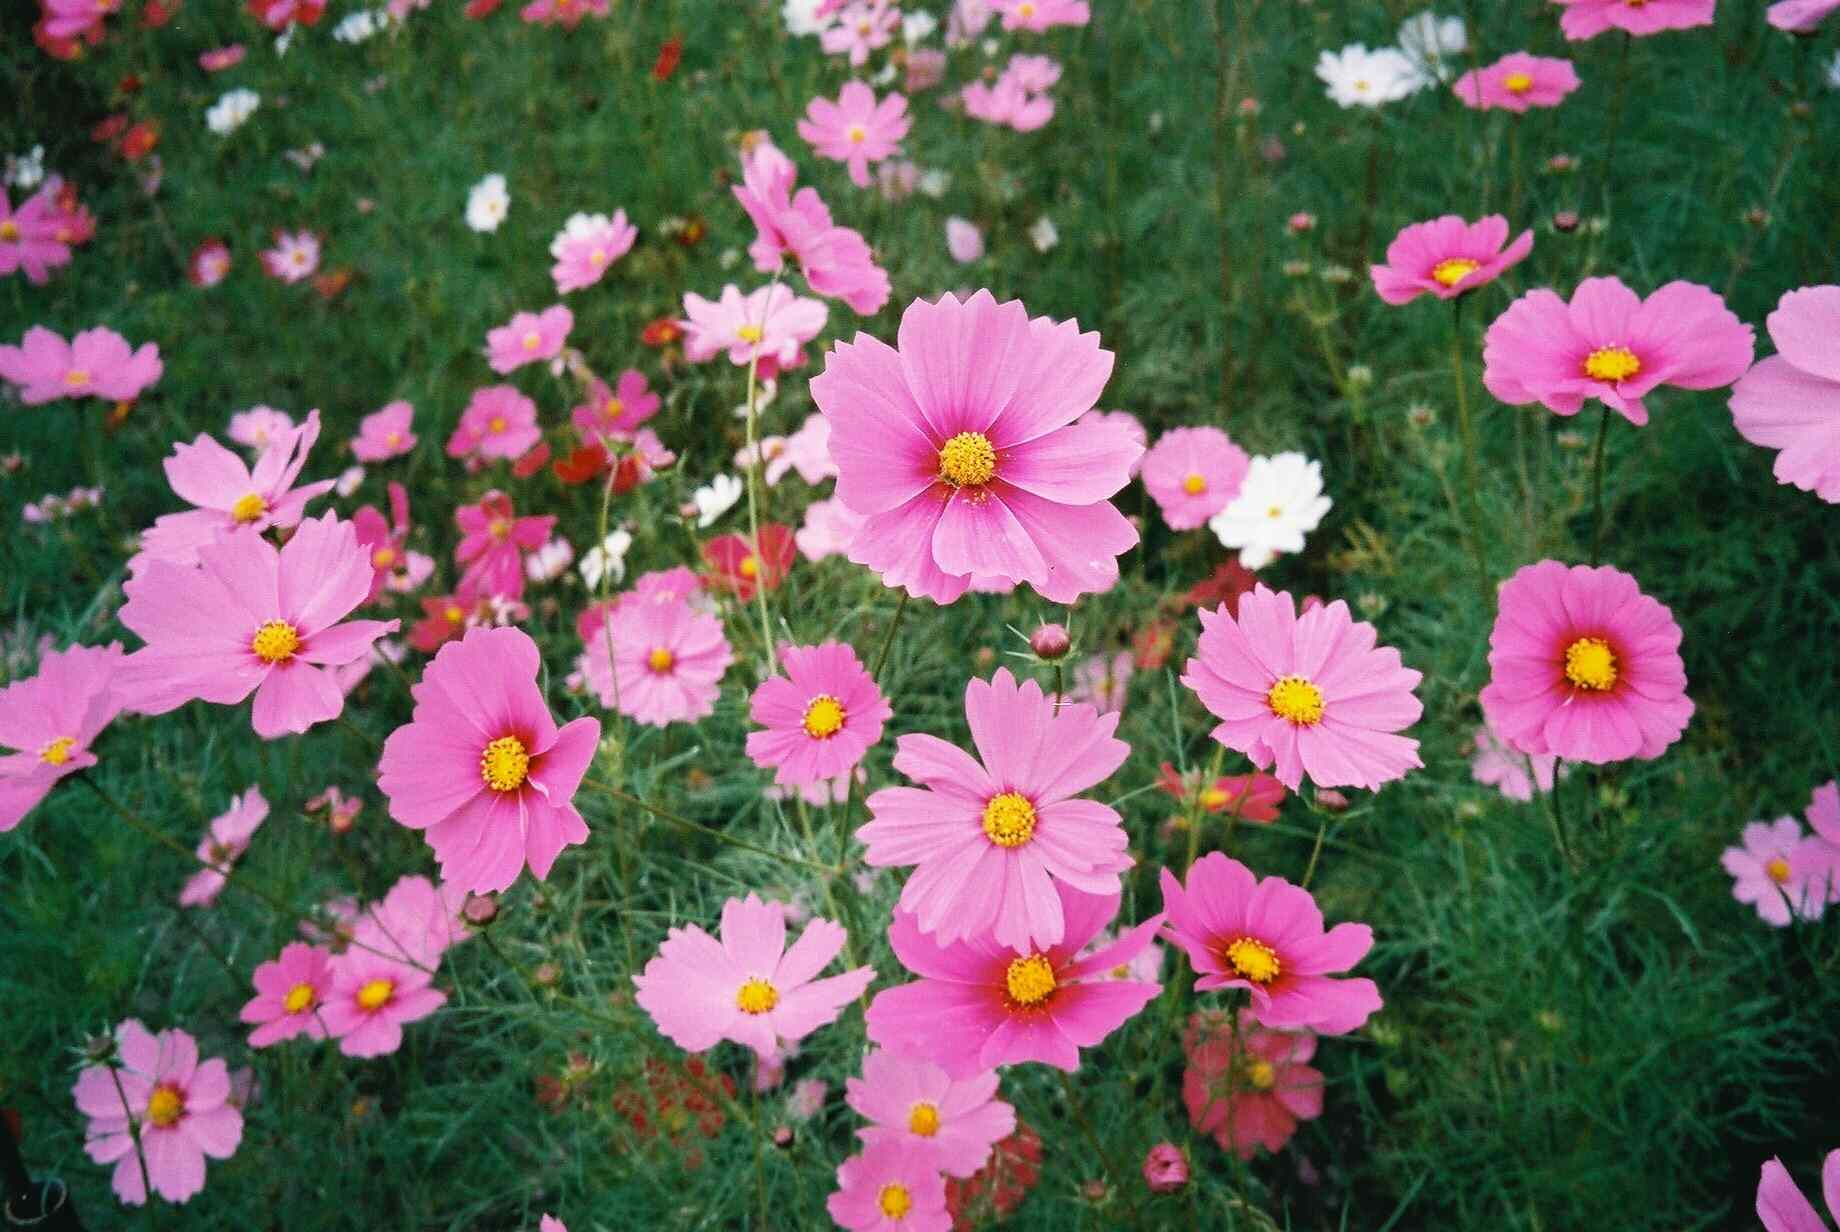 Close-up of pink cosmos growing in a field